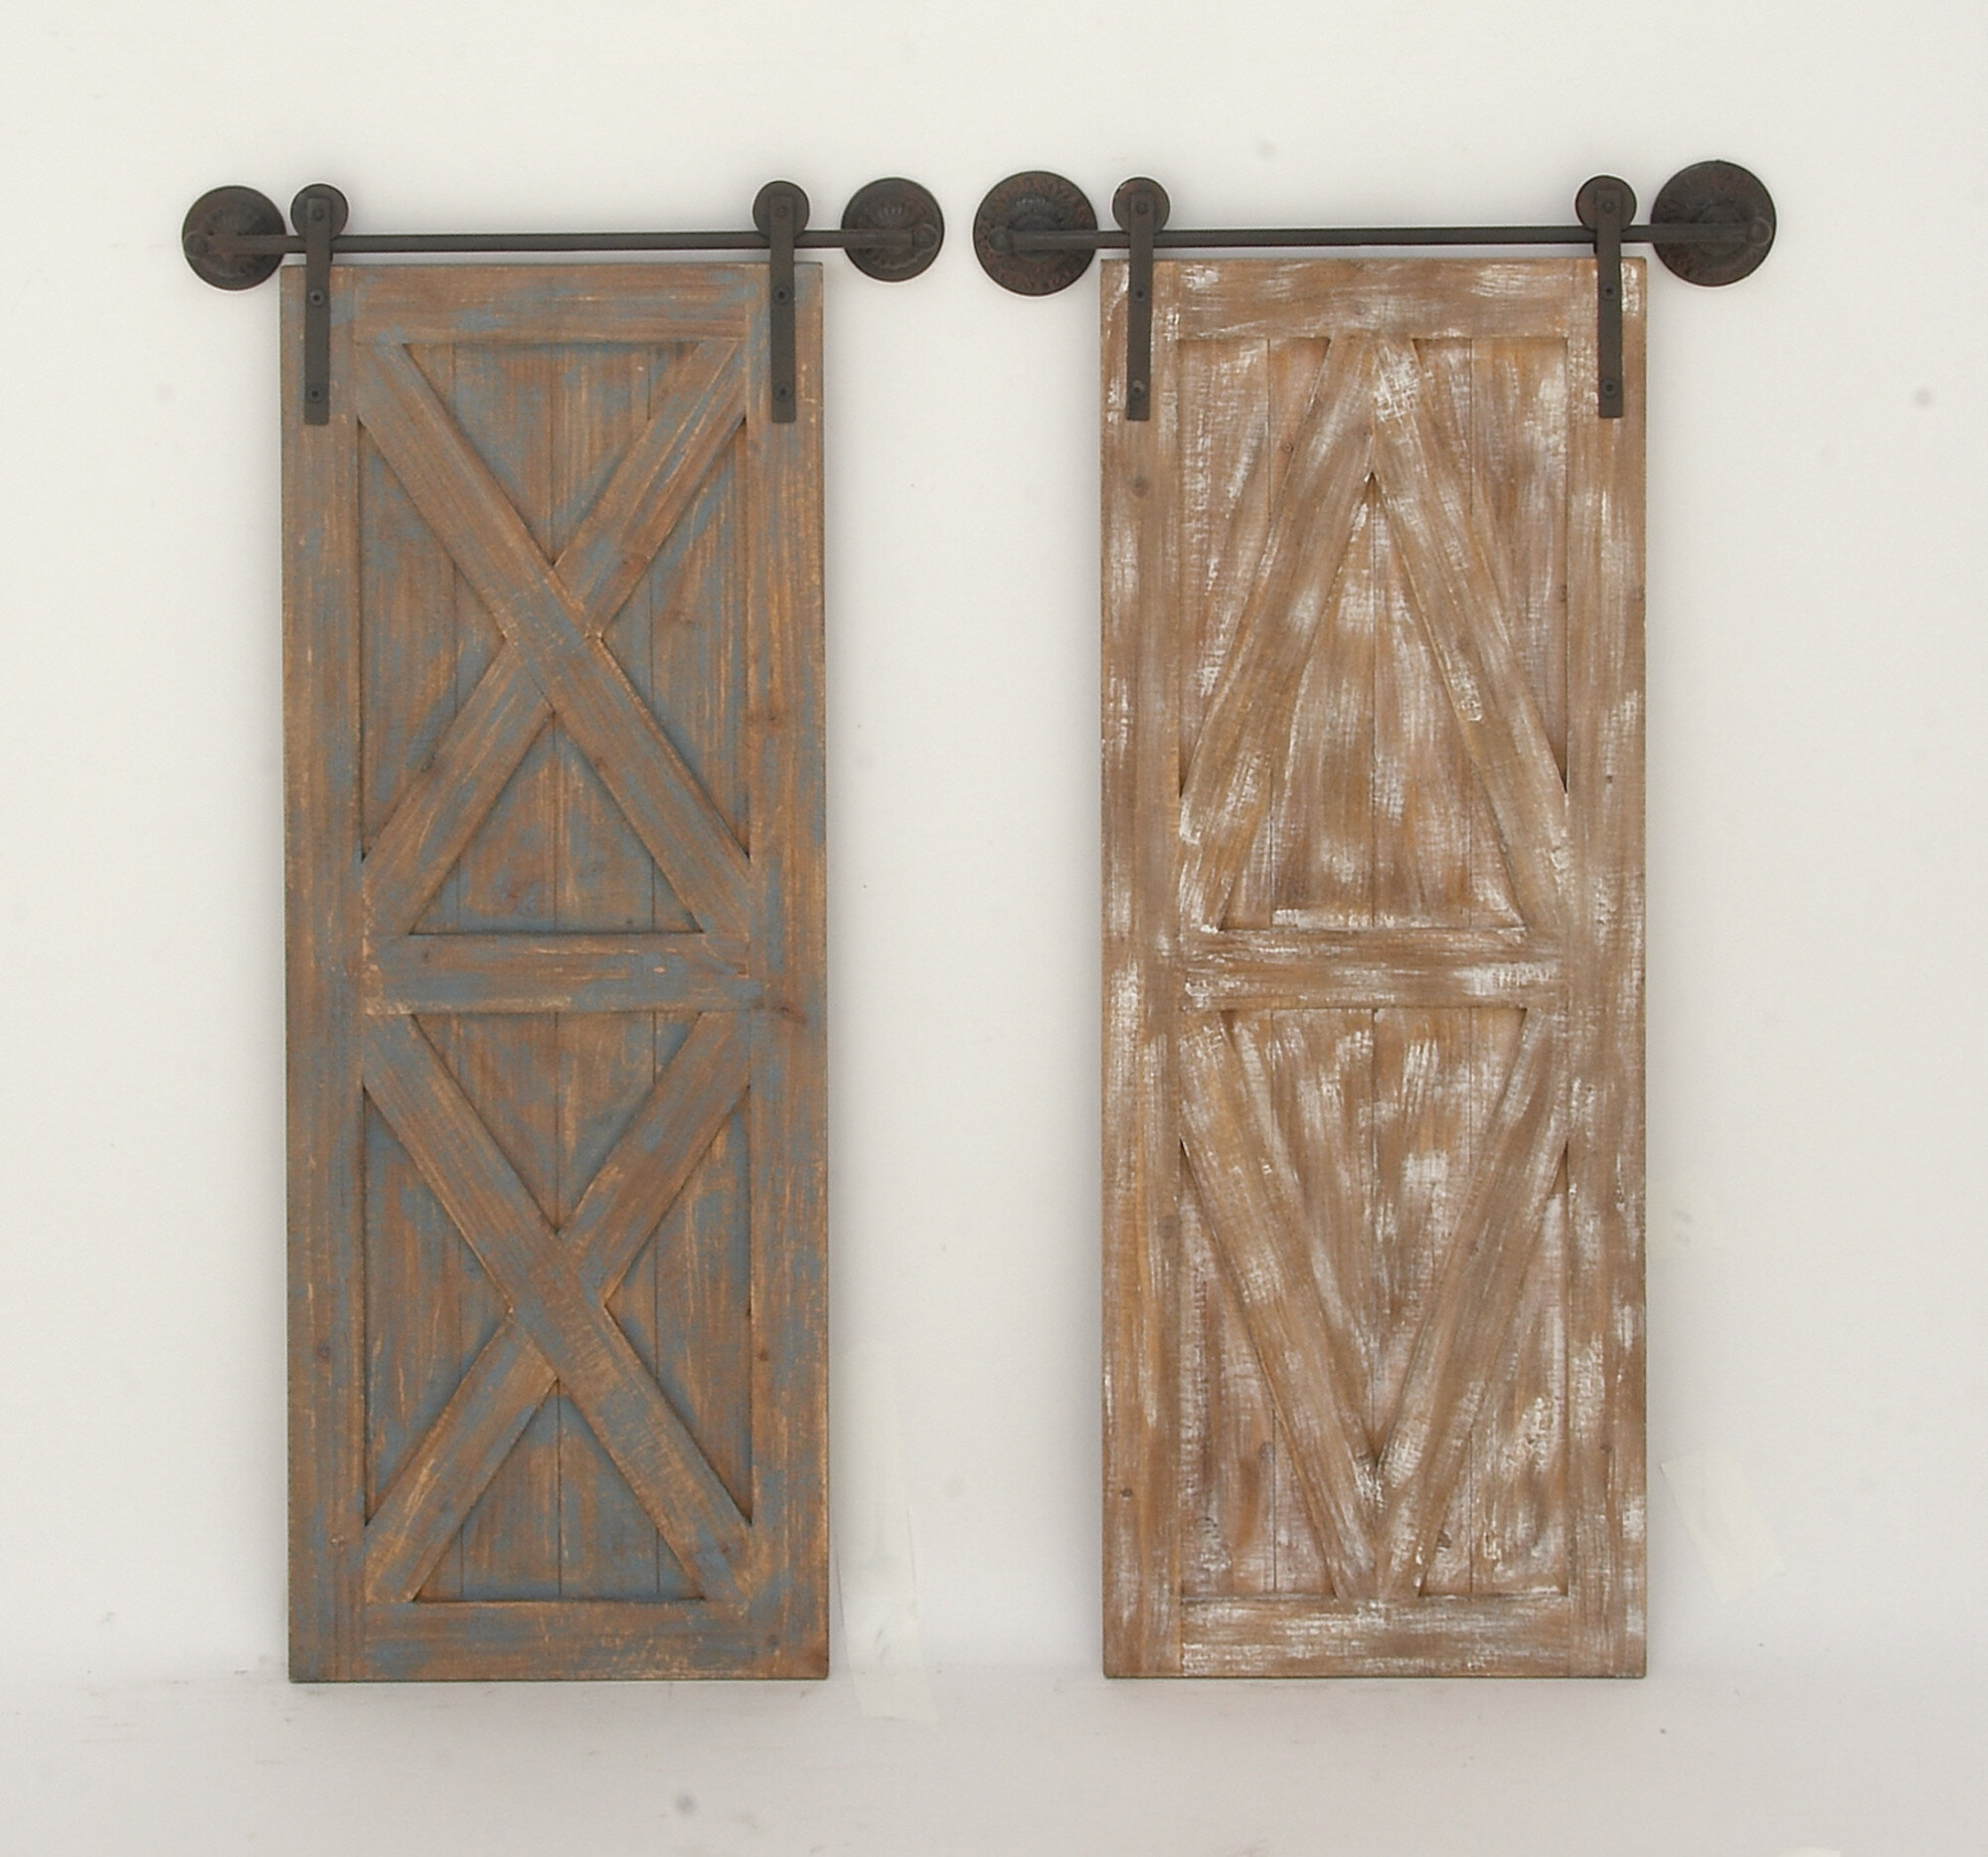 Brown Wood And Metal Wall Decor Within 2020 Cole & Grey 2 Piece Wood/metal Wall Décor & Reviews (View 9 of 20)